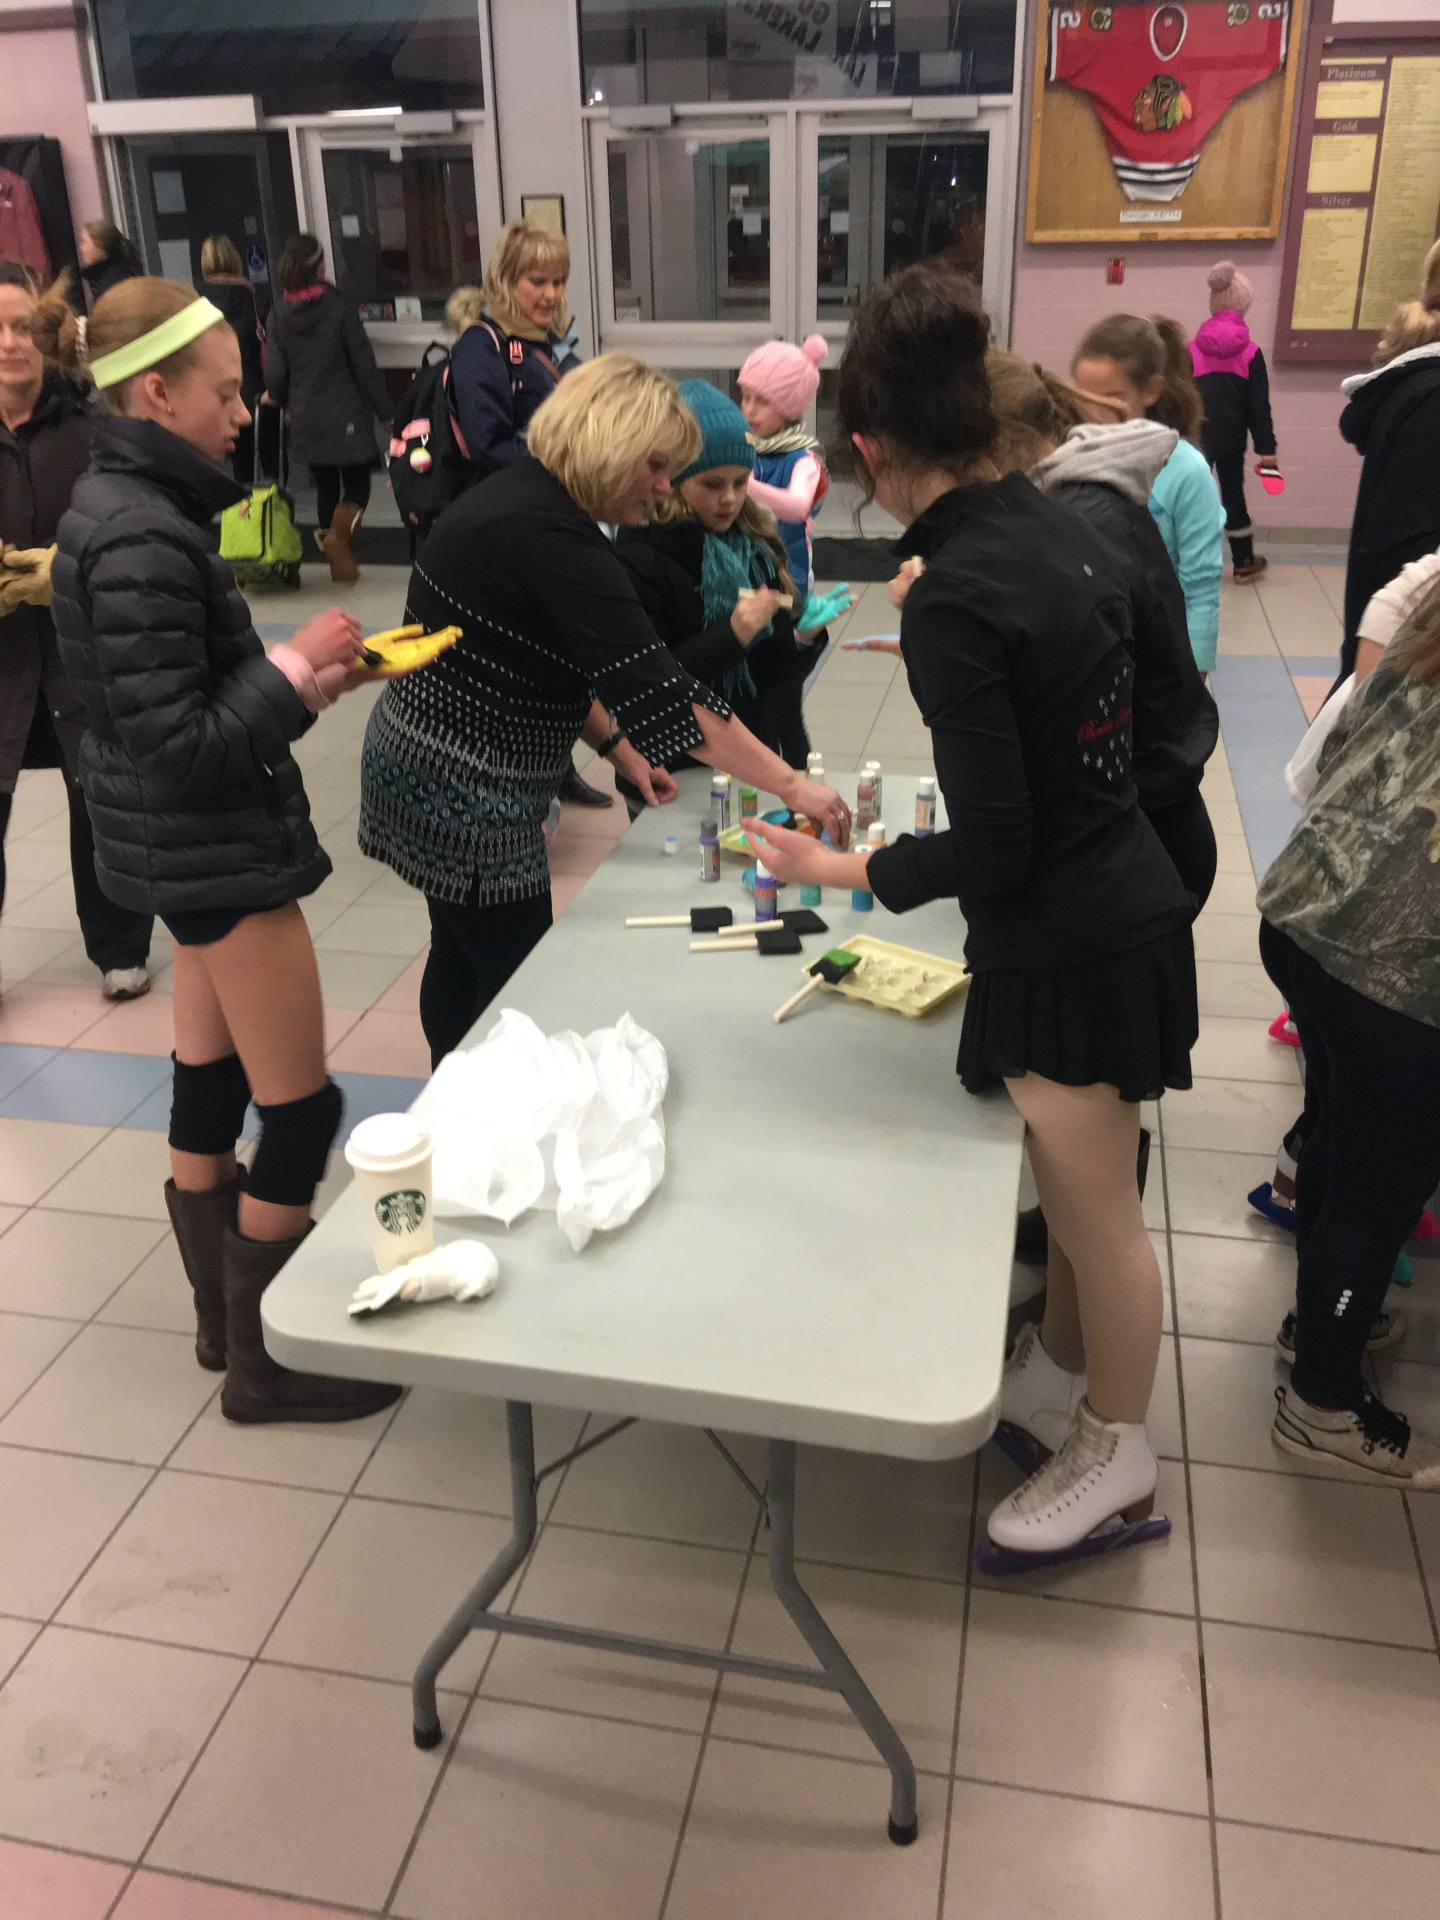 Club bonding - Making decorations for Regionals 2018